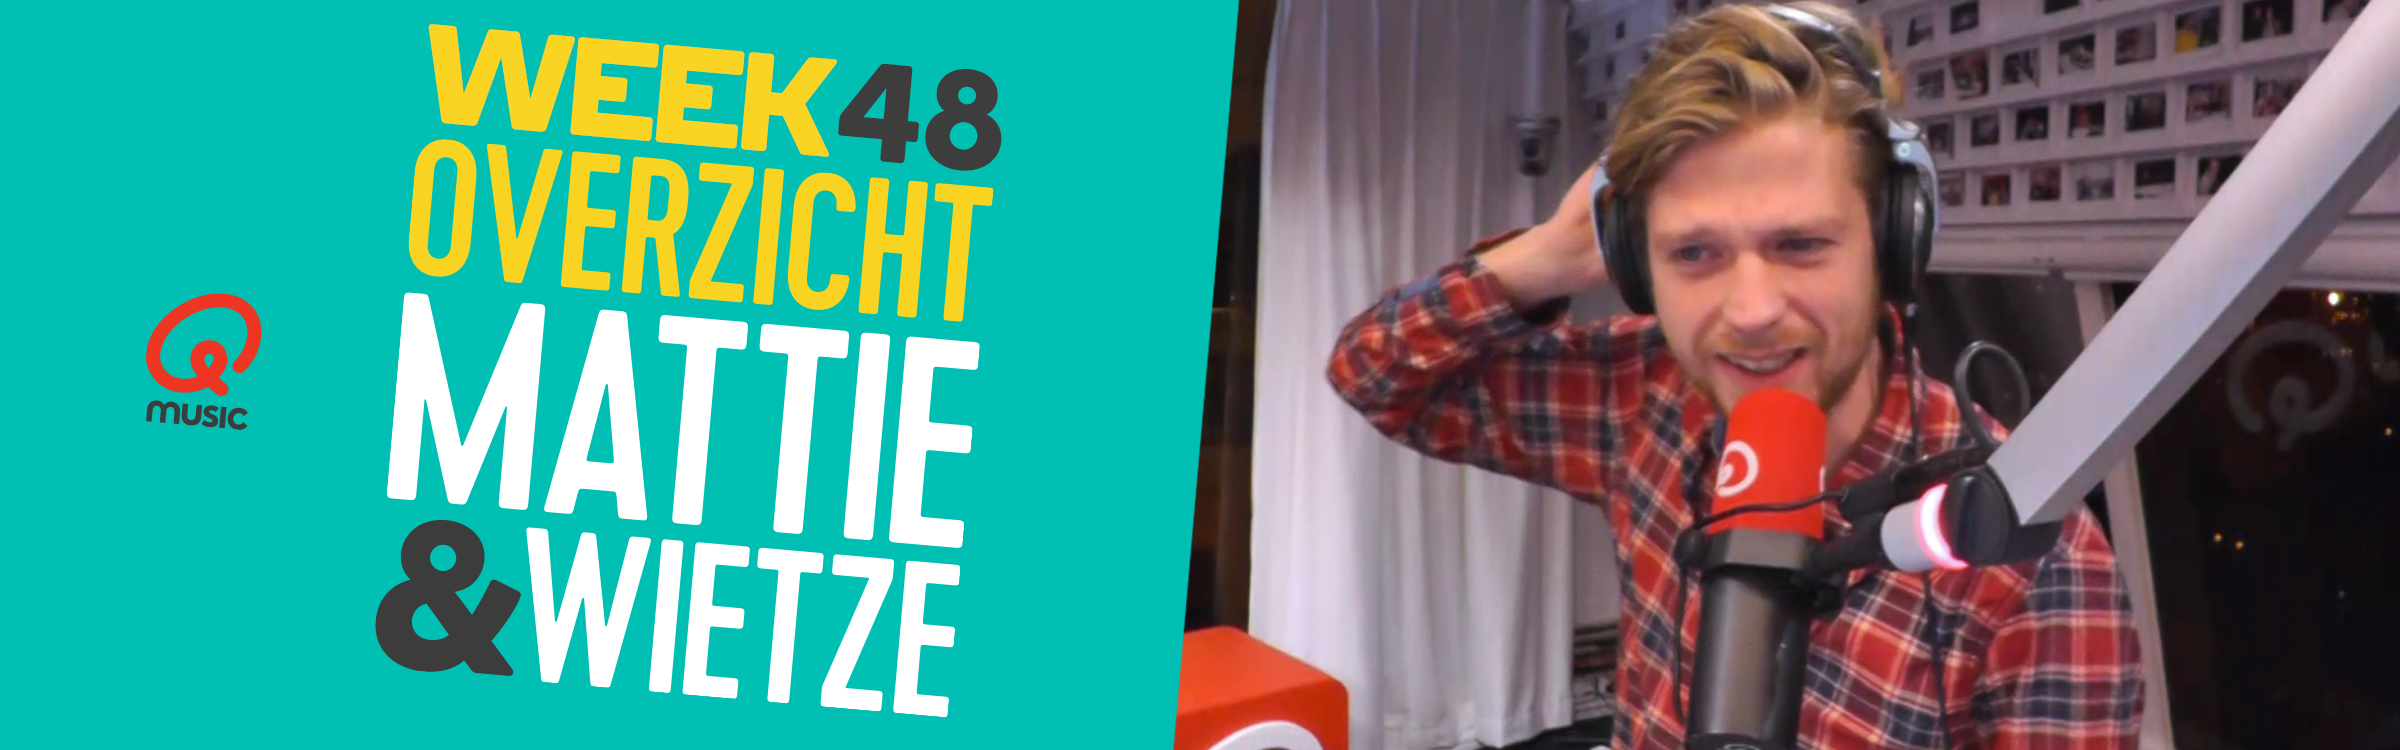 Mattiewietze weekoverzicht48 header